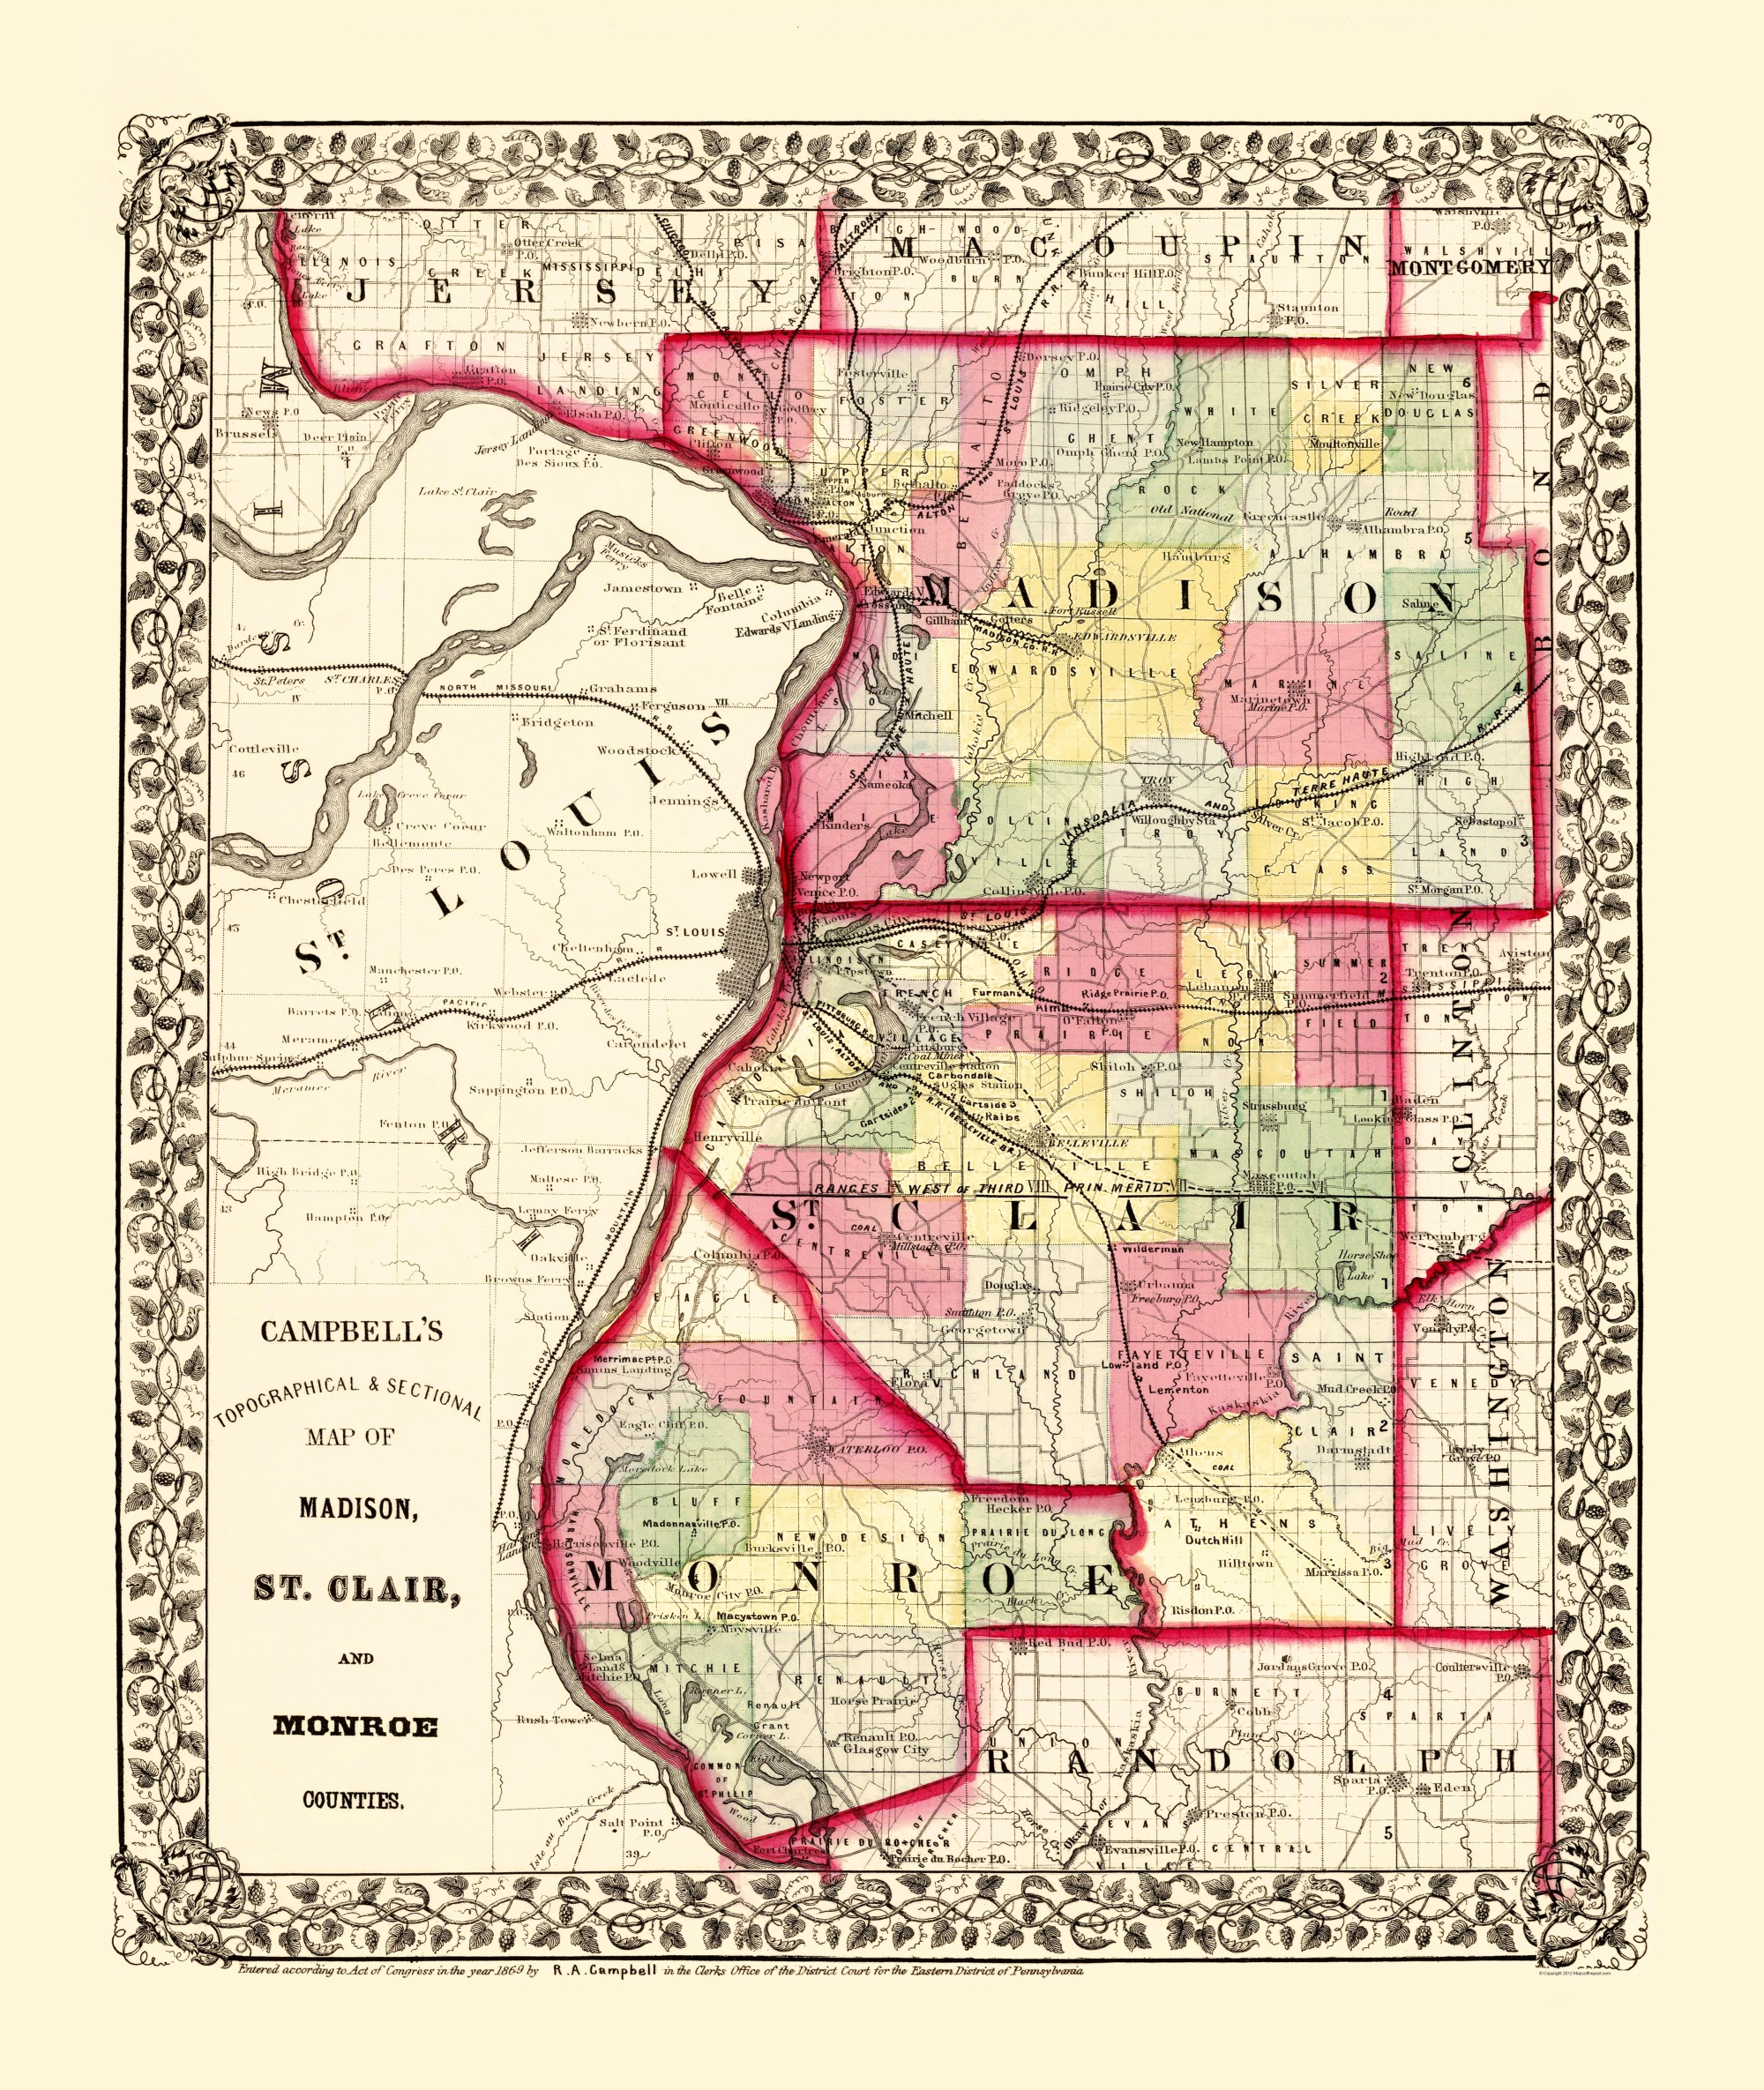 Old County Map Madison St Clair Monroe Illinois 1850